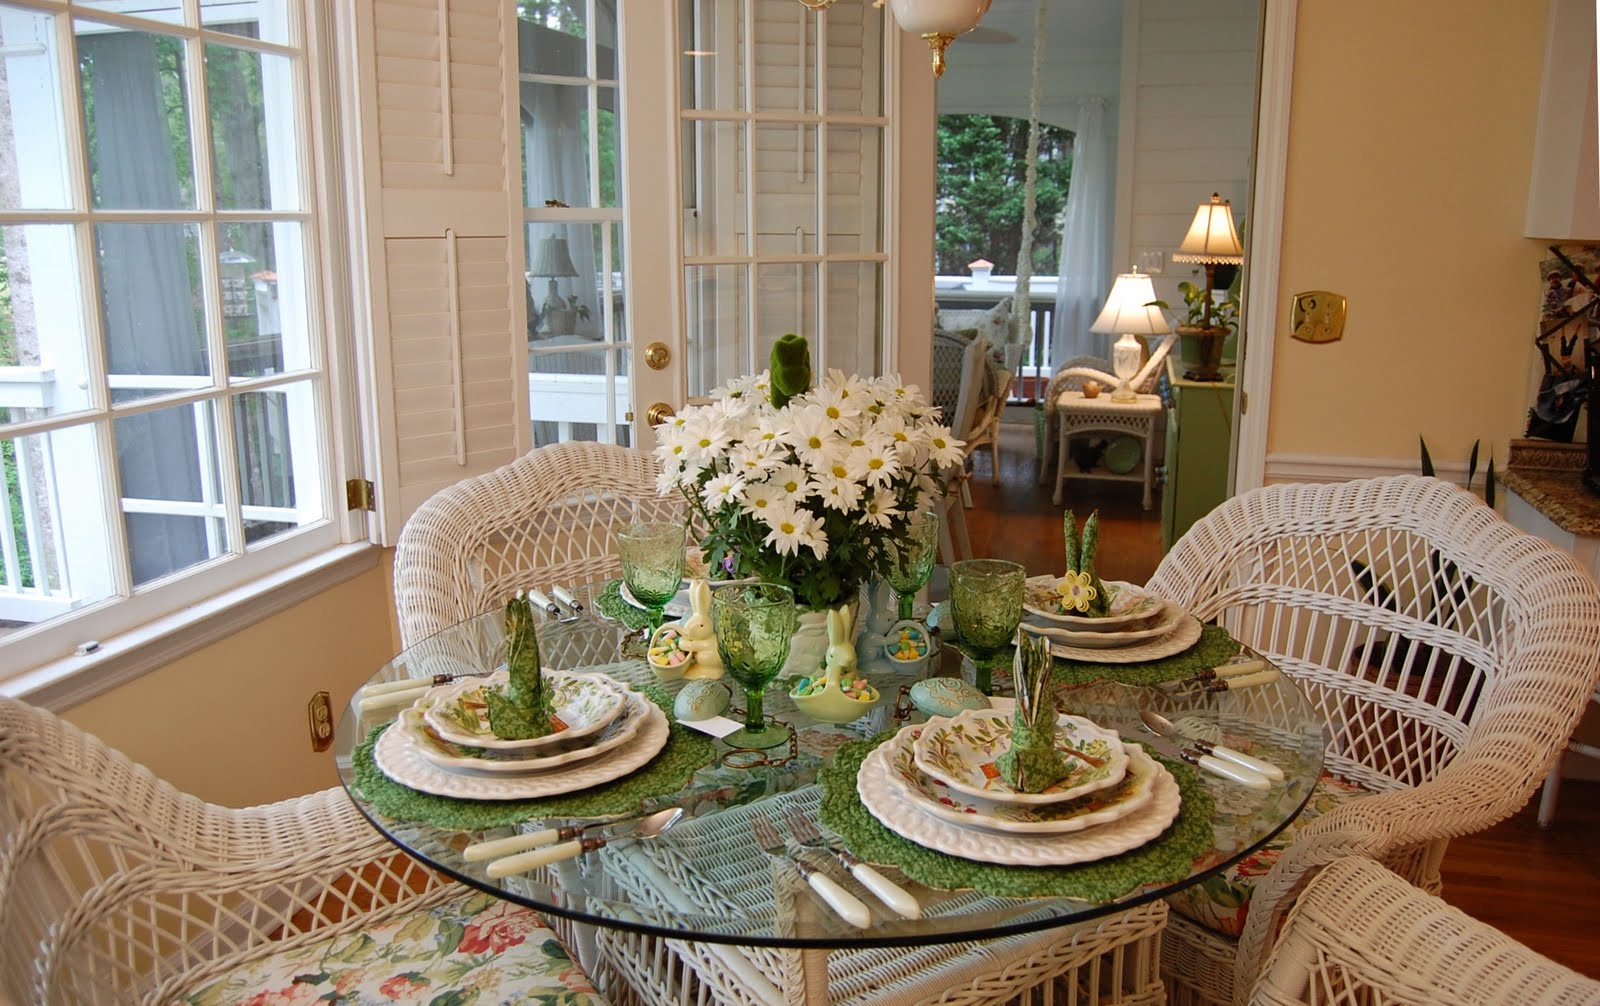 Table Decorations: Easter Table Setting Tablescape With Floral Centerpiece